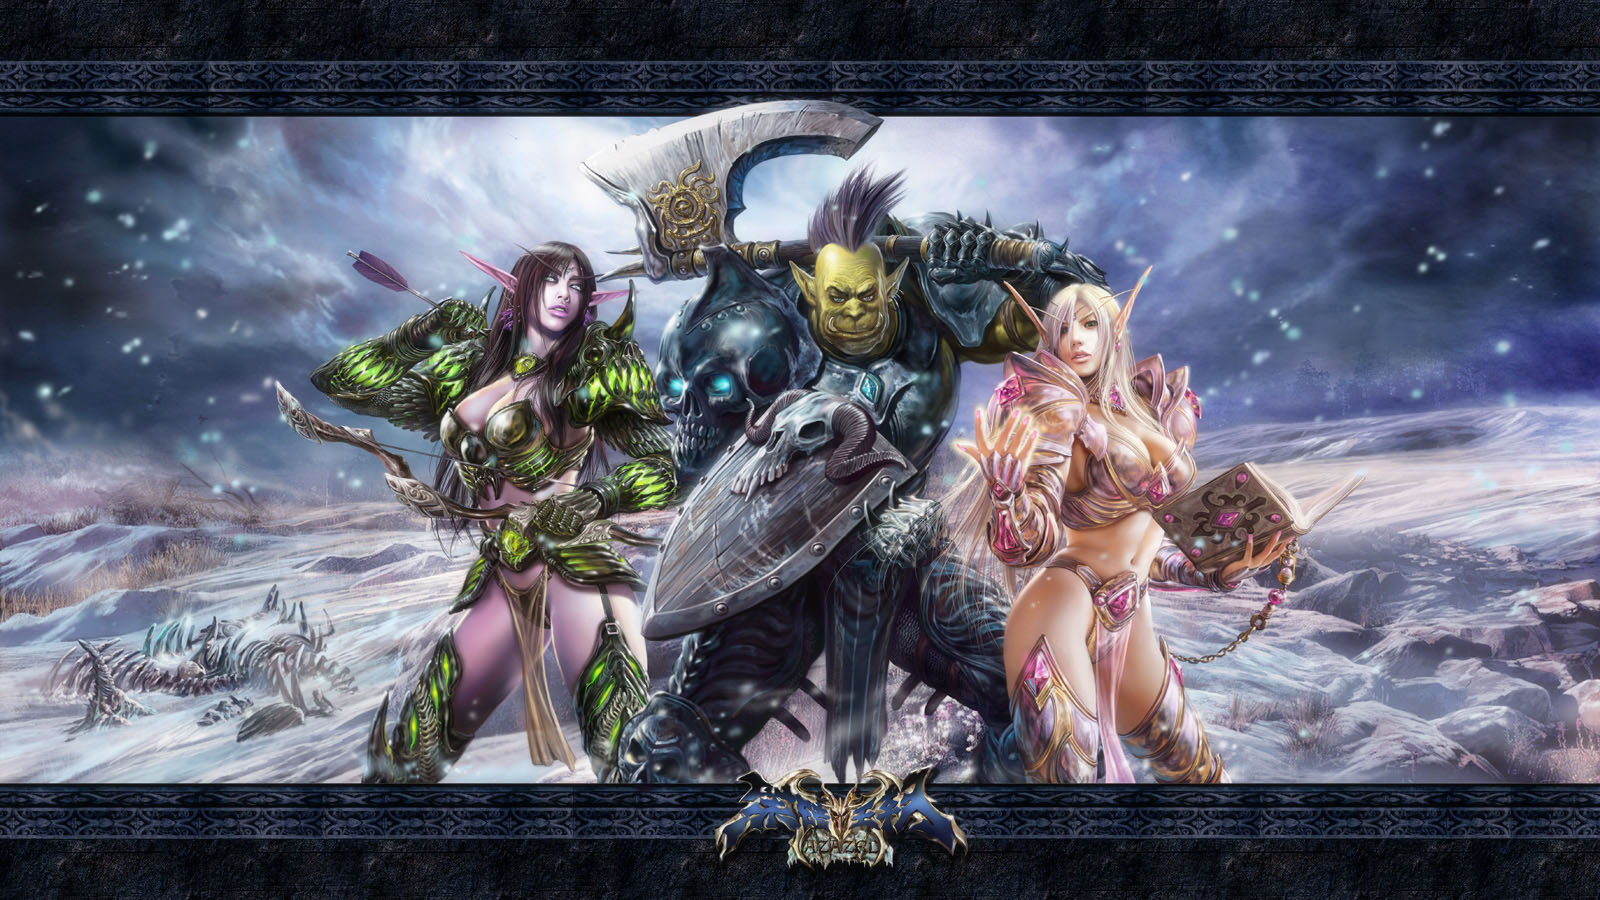 3Dofwarcraft pictures sexy toons